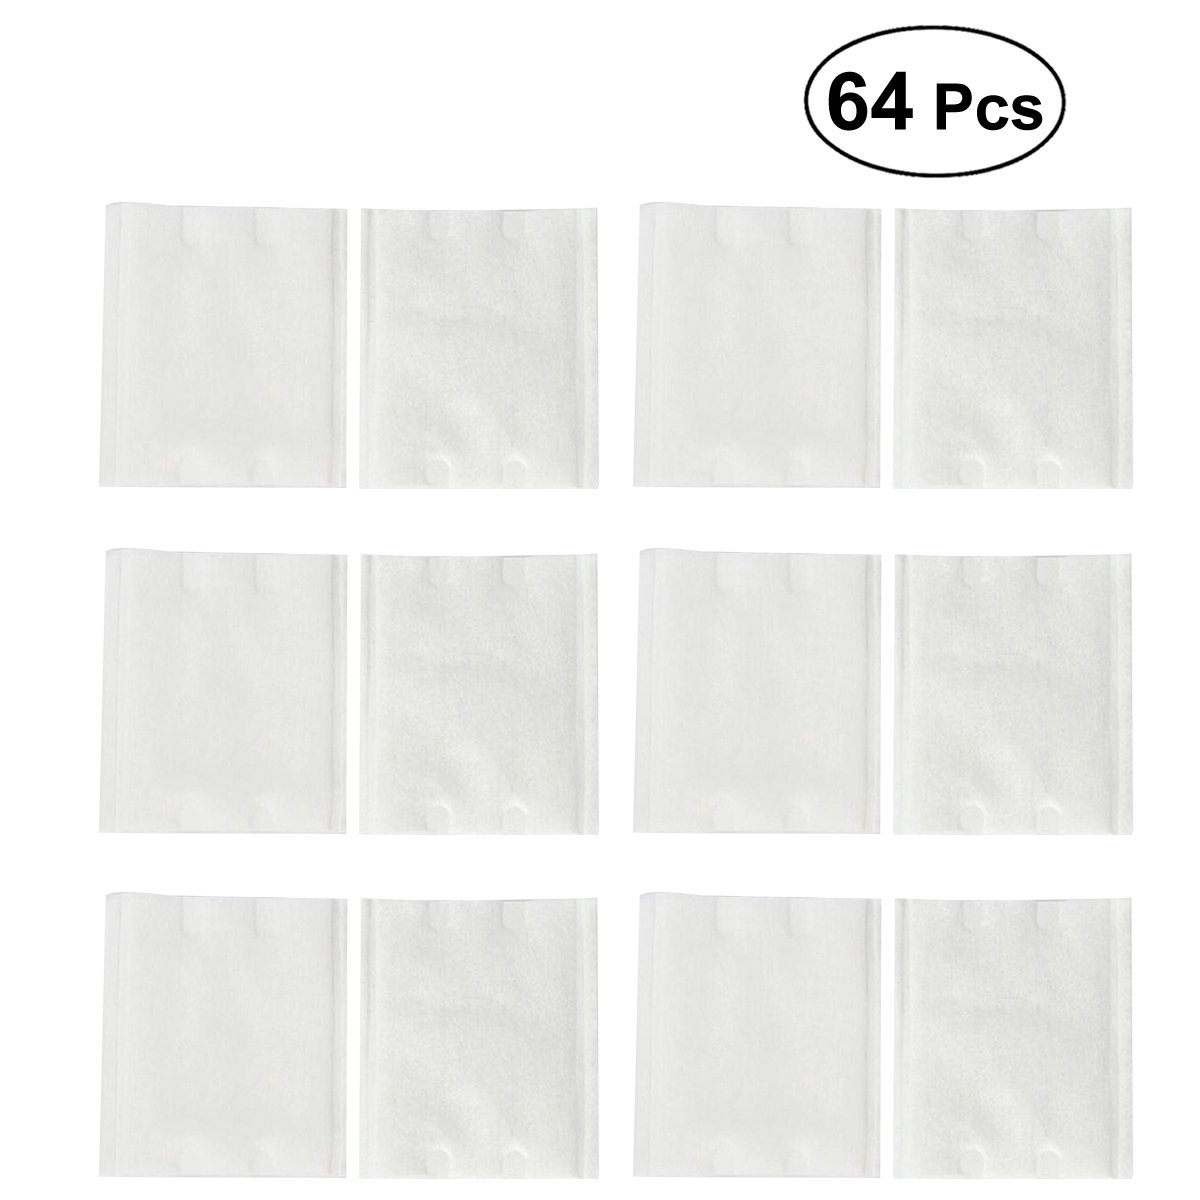 Lurrose 64 Pcs Portable Cotton Piece Makeup Remover Individual Pack Cotton Square Pad (Random Color)